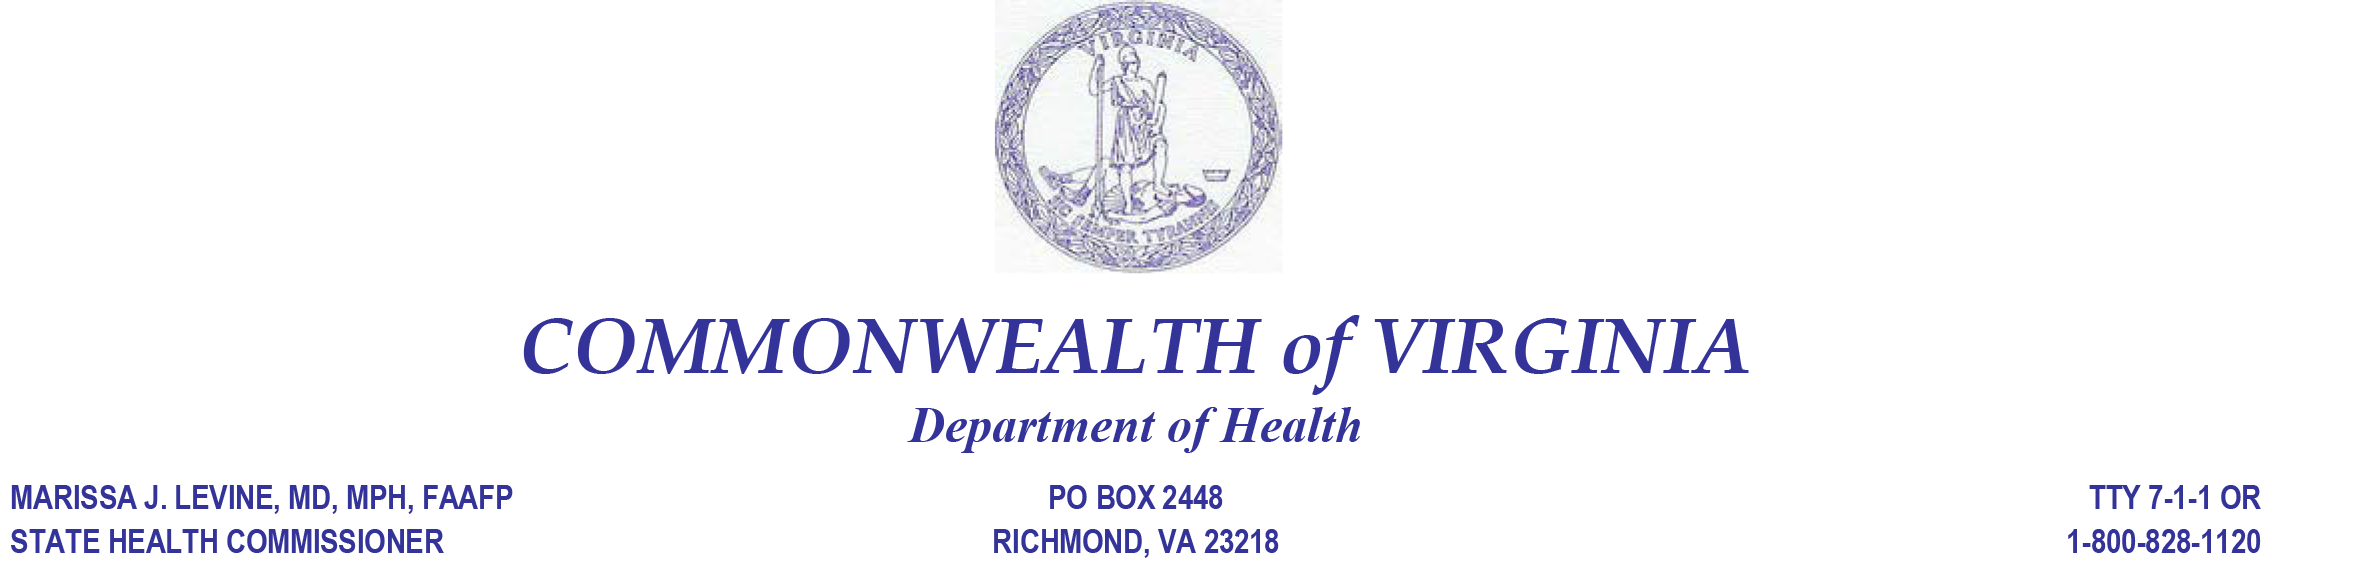 Seal of Virginia. Commonwealth of Virginia. Department of Health. Marissa J. Levine, MD, MPH, FAAFP. State Health Commissioner. PO BOX 2448 Richmond VA, 23218, TTY 9-1-1 or 1-800-828-1120.